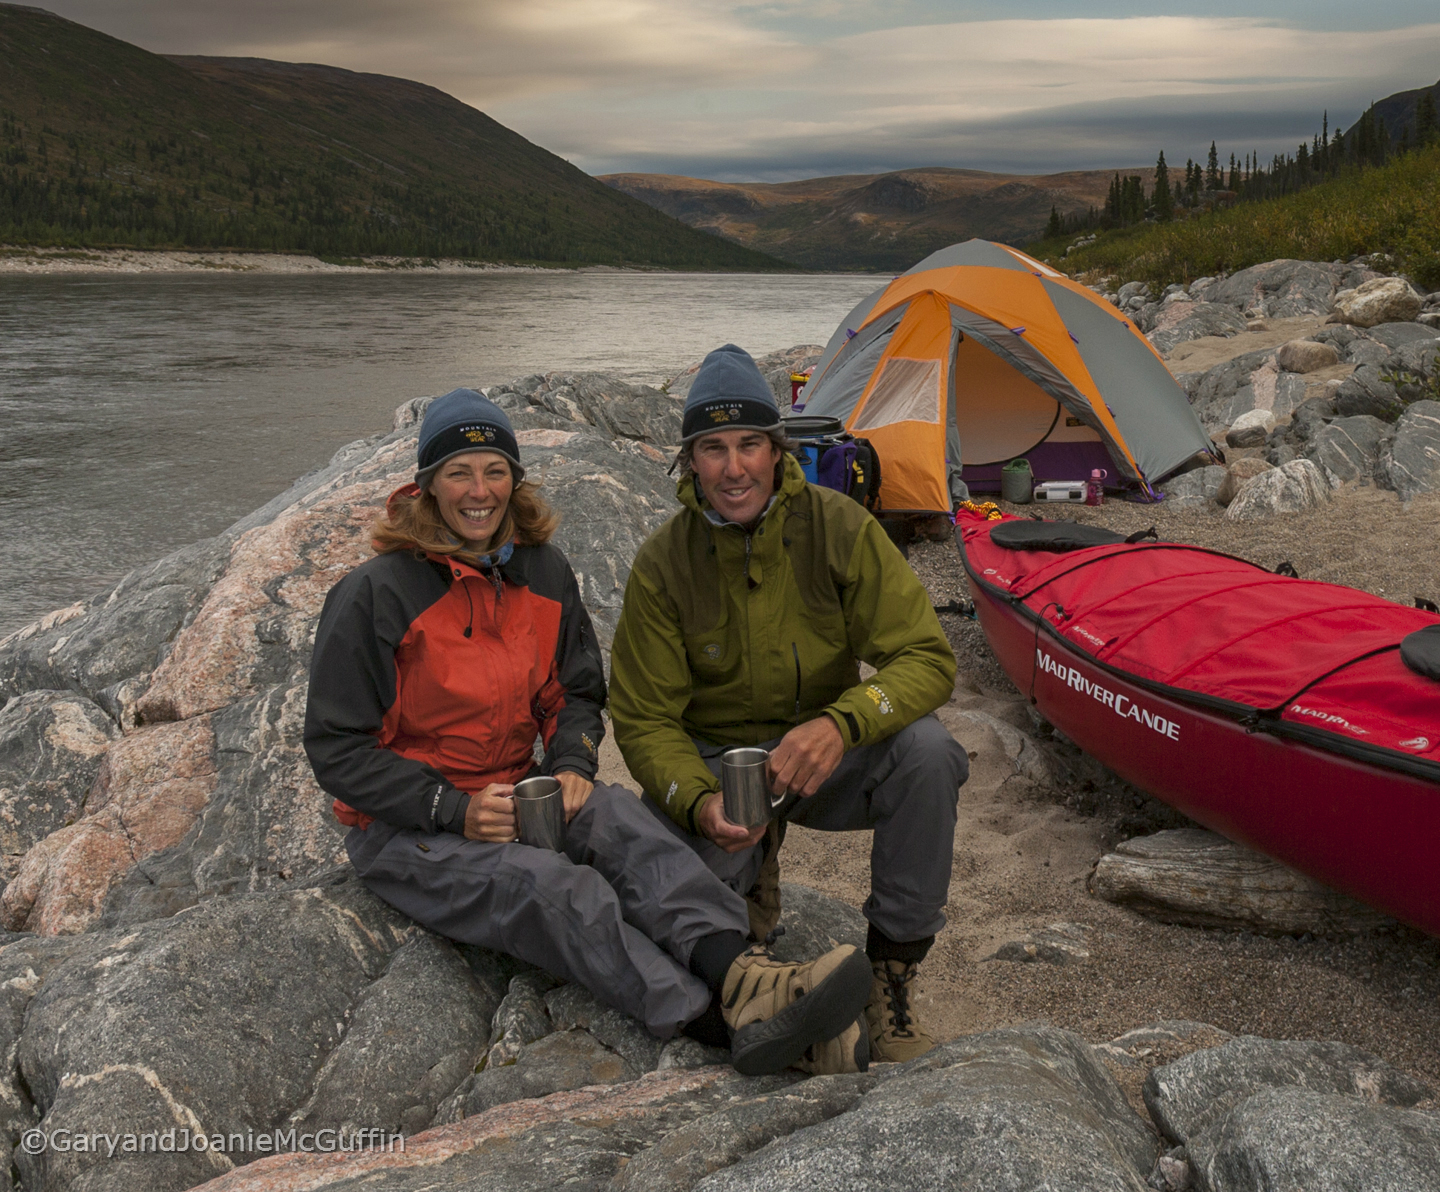 Couple sitting on rocks with their tent and canoe by a river